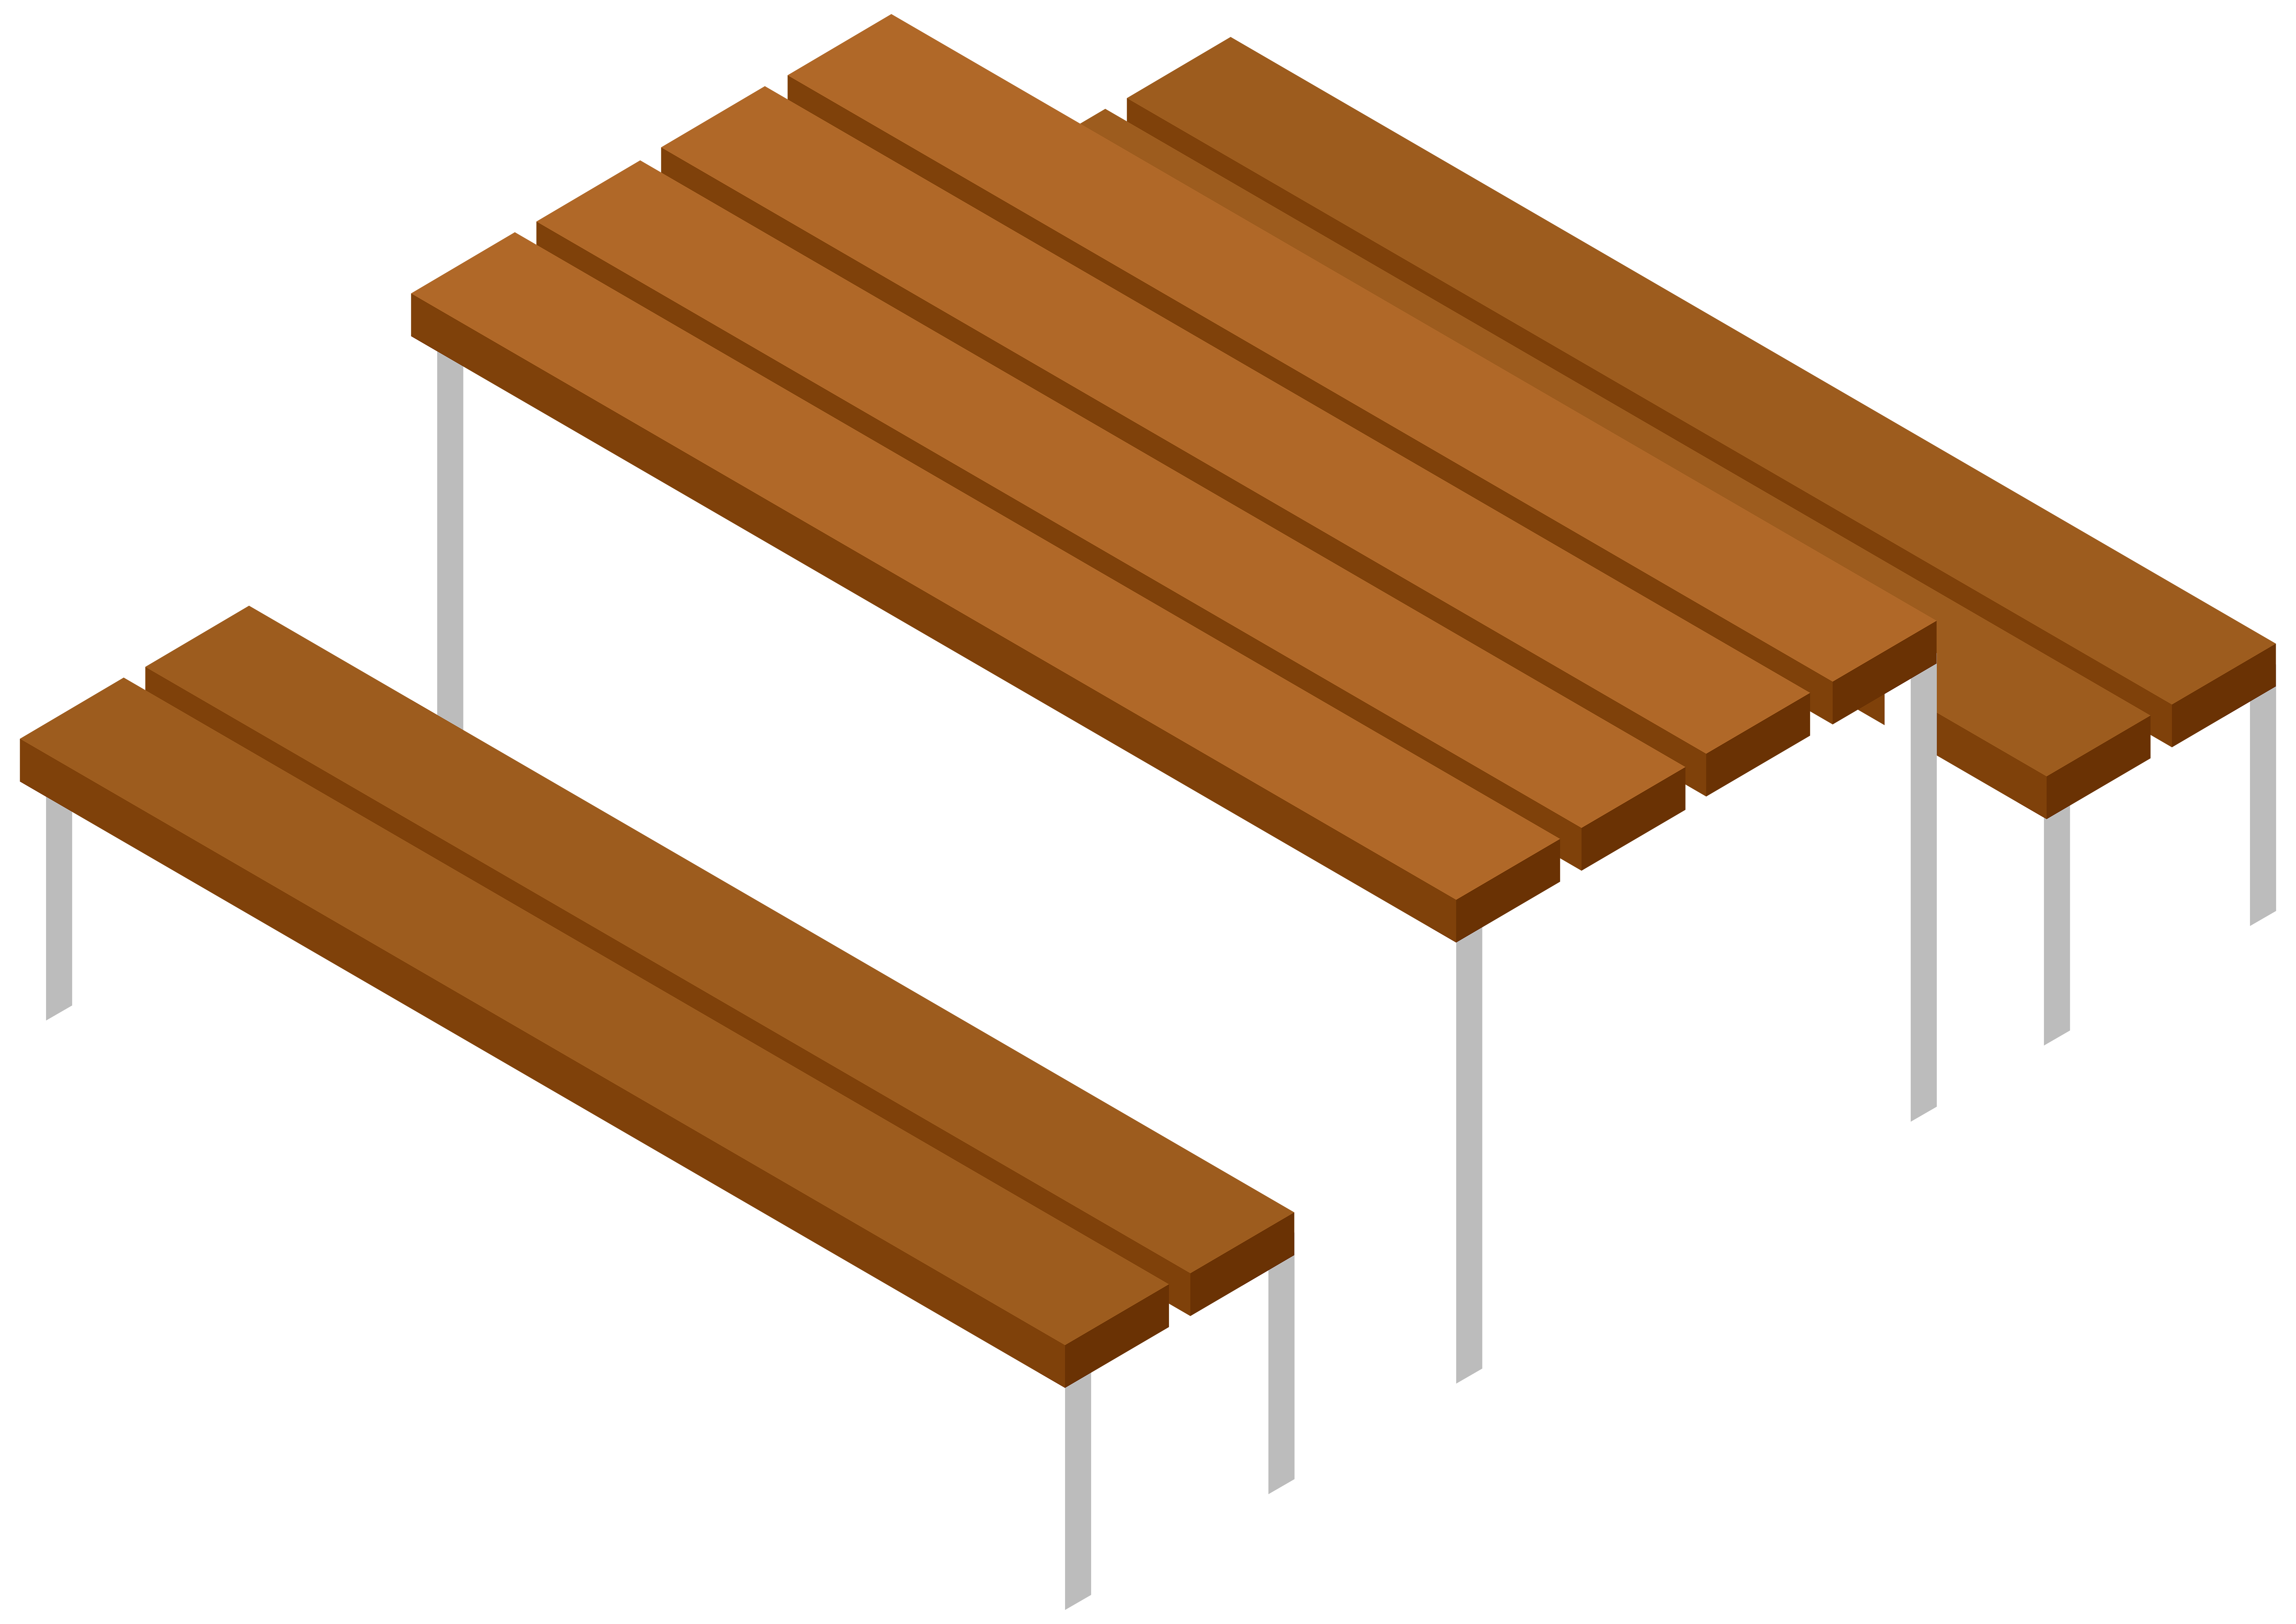 Picnic Table and Bench Transparent Clip Art Image.